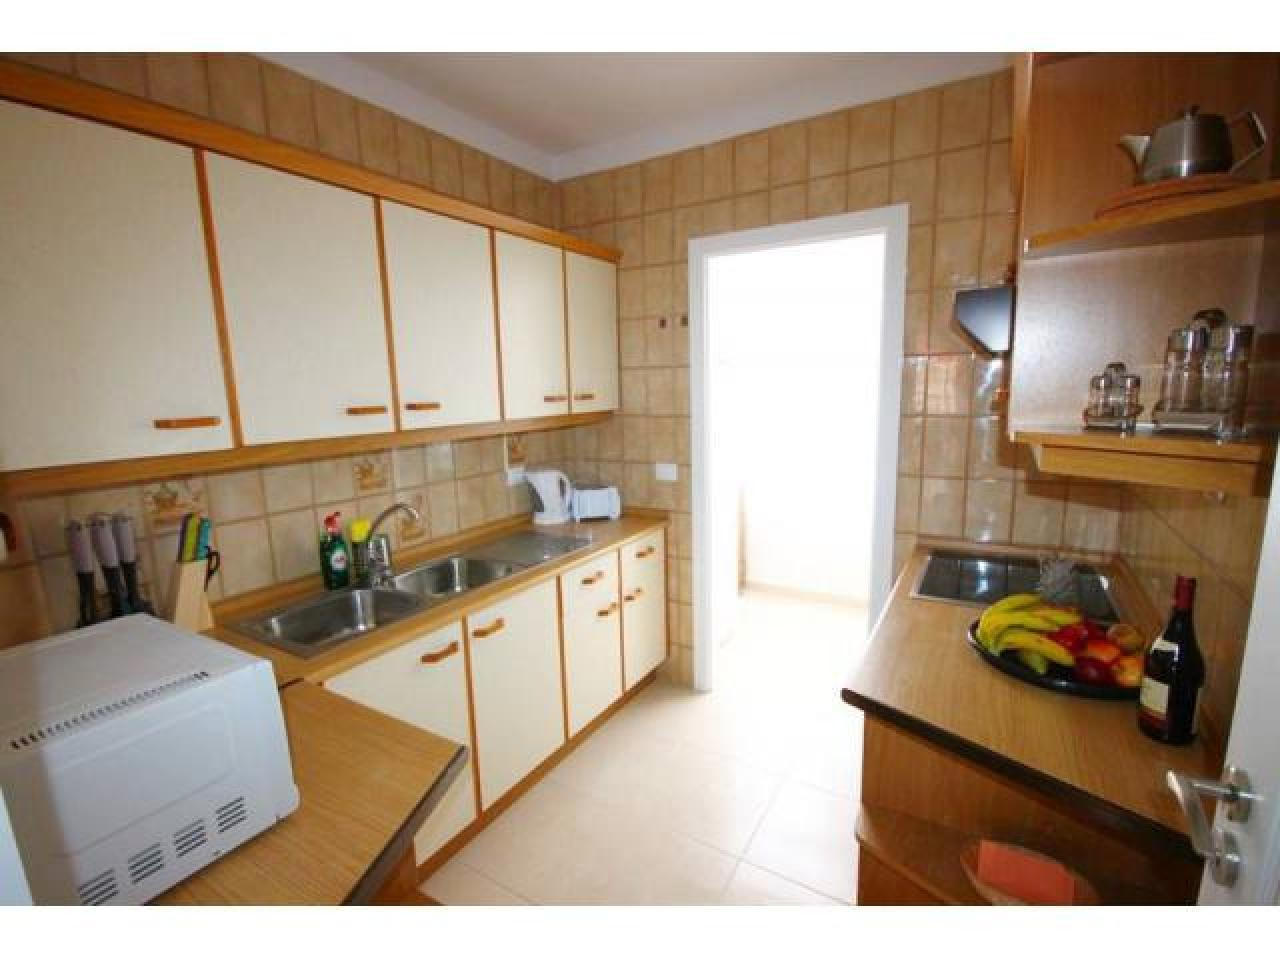 Apartment in Tenerife for rent - 2